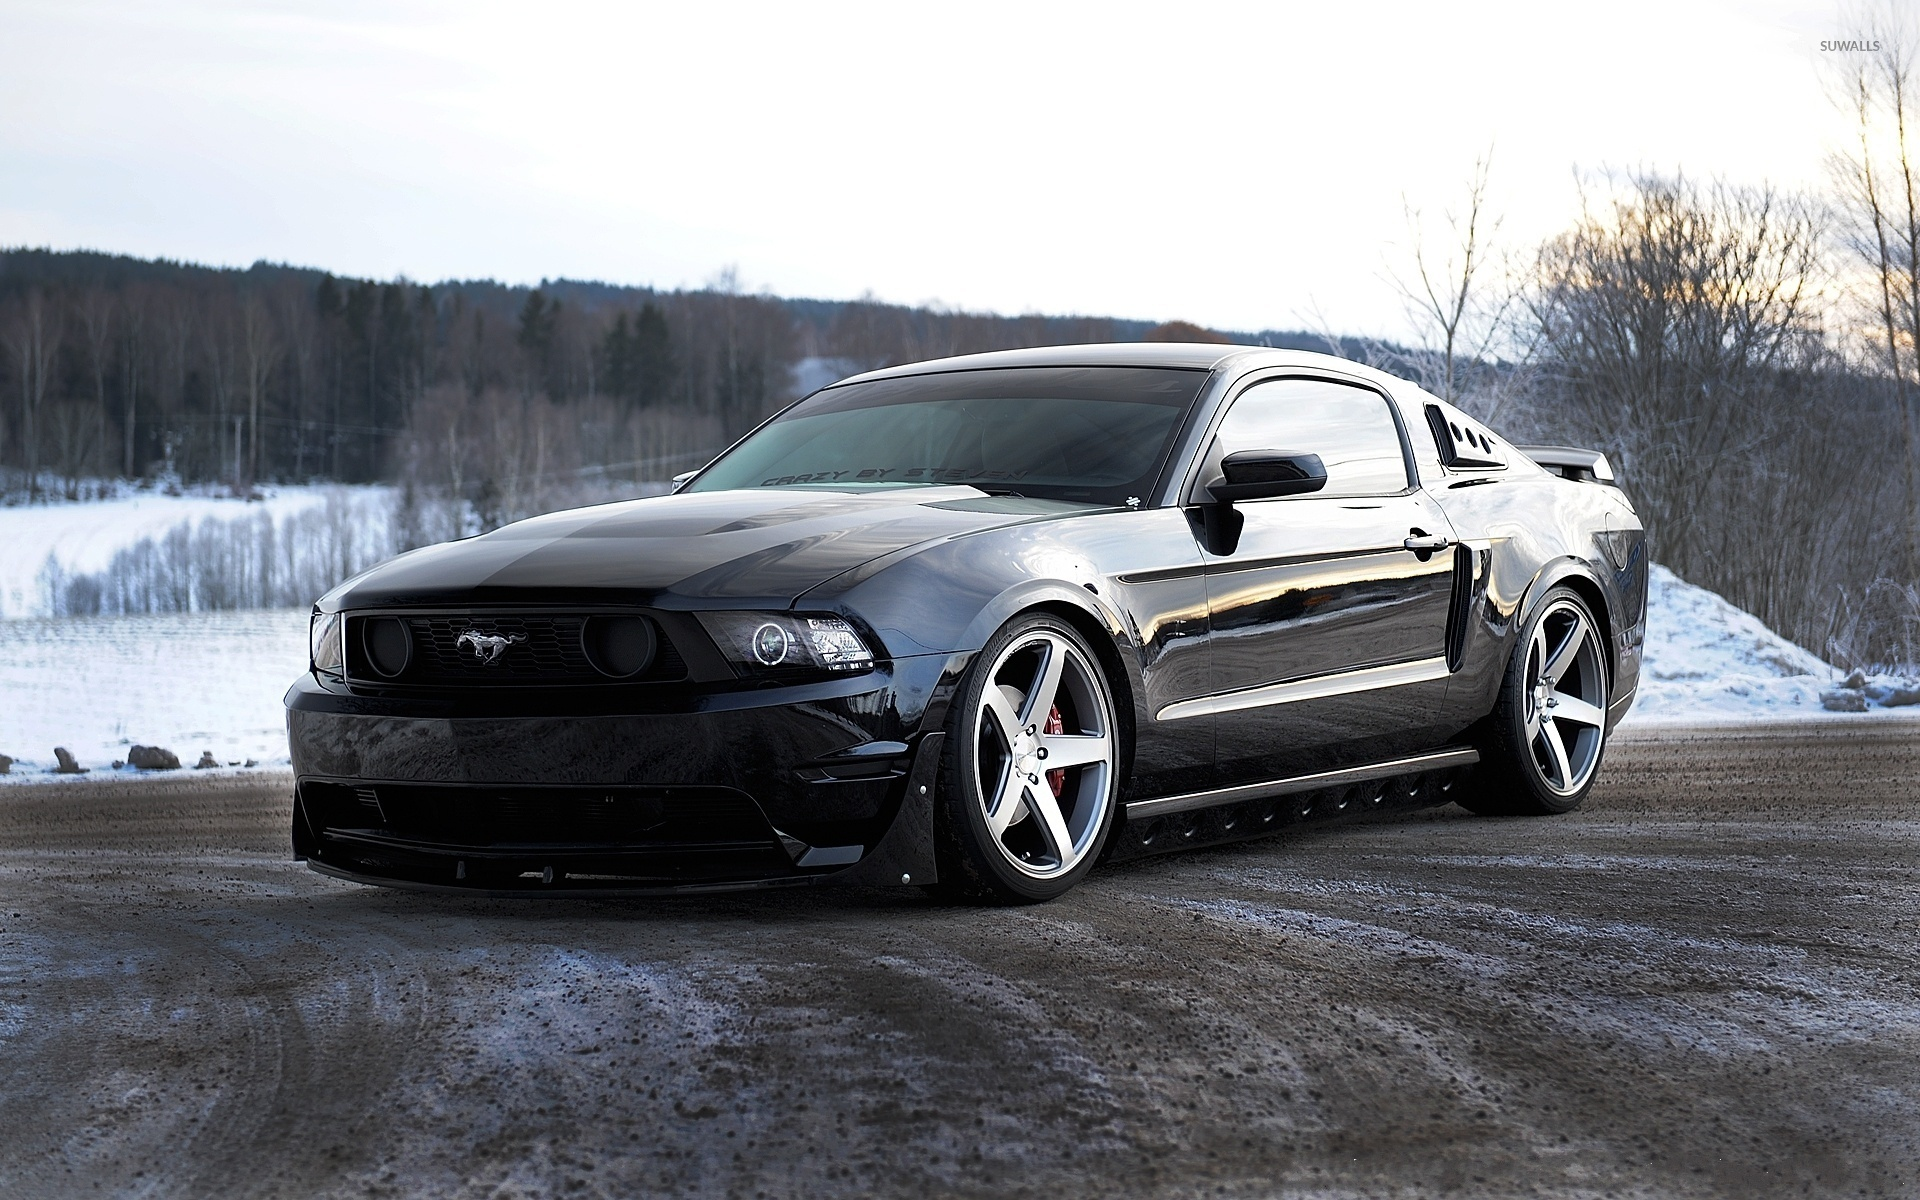 Black Ford Mustang Front View Wallpaper Car Wallpapers 48954